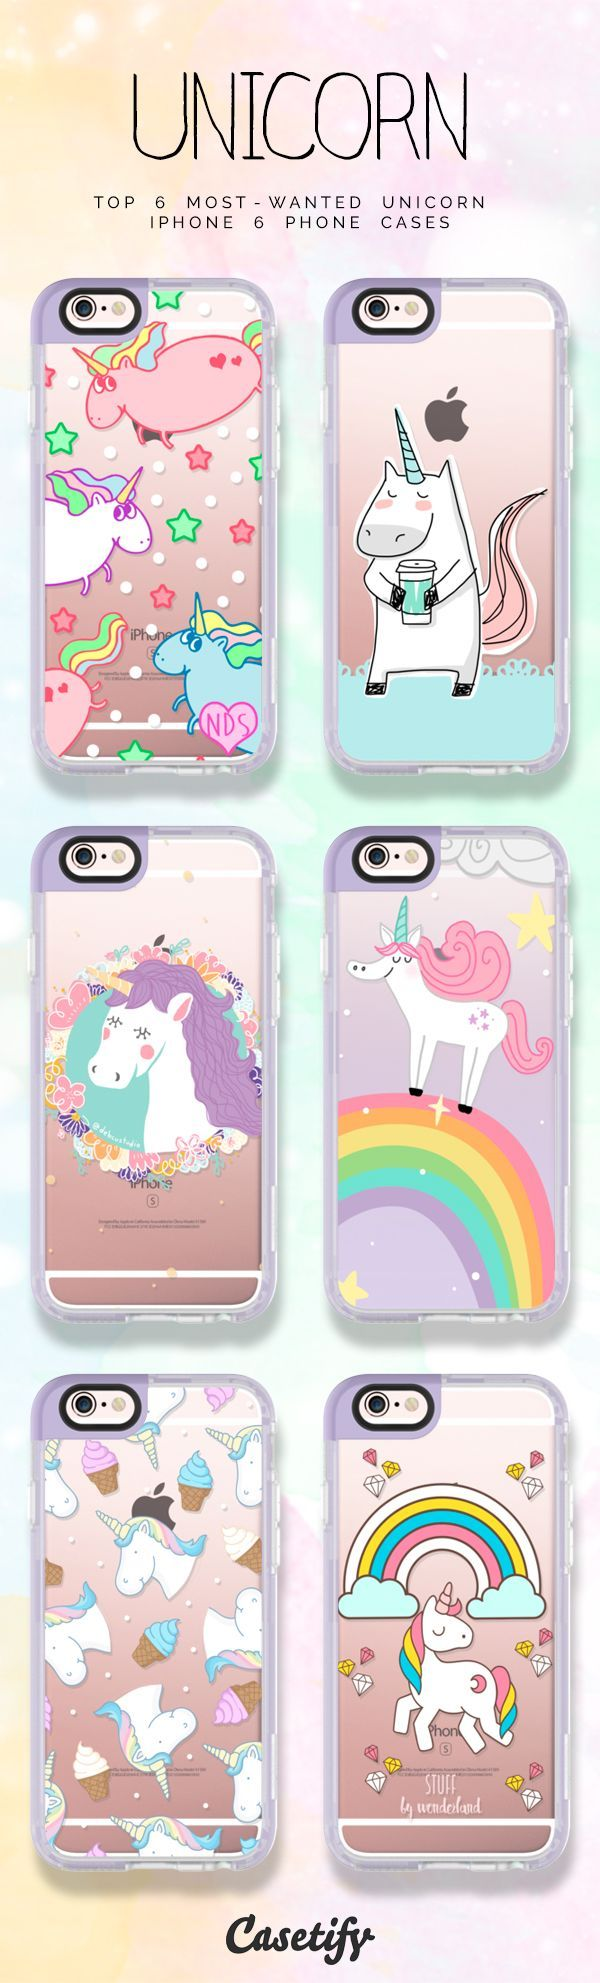 Top 6 most wanted pastel unicorn iPhone 6 protective phone cases | Click through to shop these pastel iPhone phone case ideas >>> https://www.casetify.com/artworks/fAH8DQueQO #animal | /casetify/